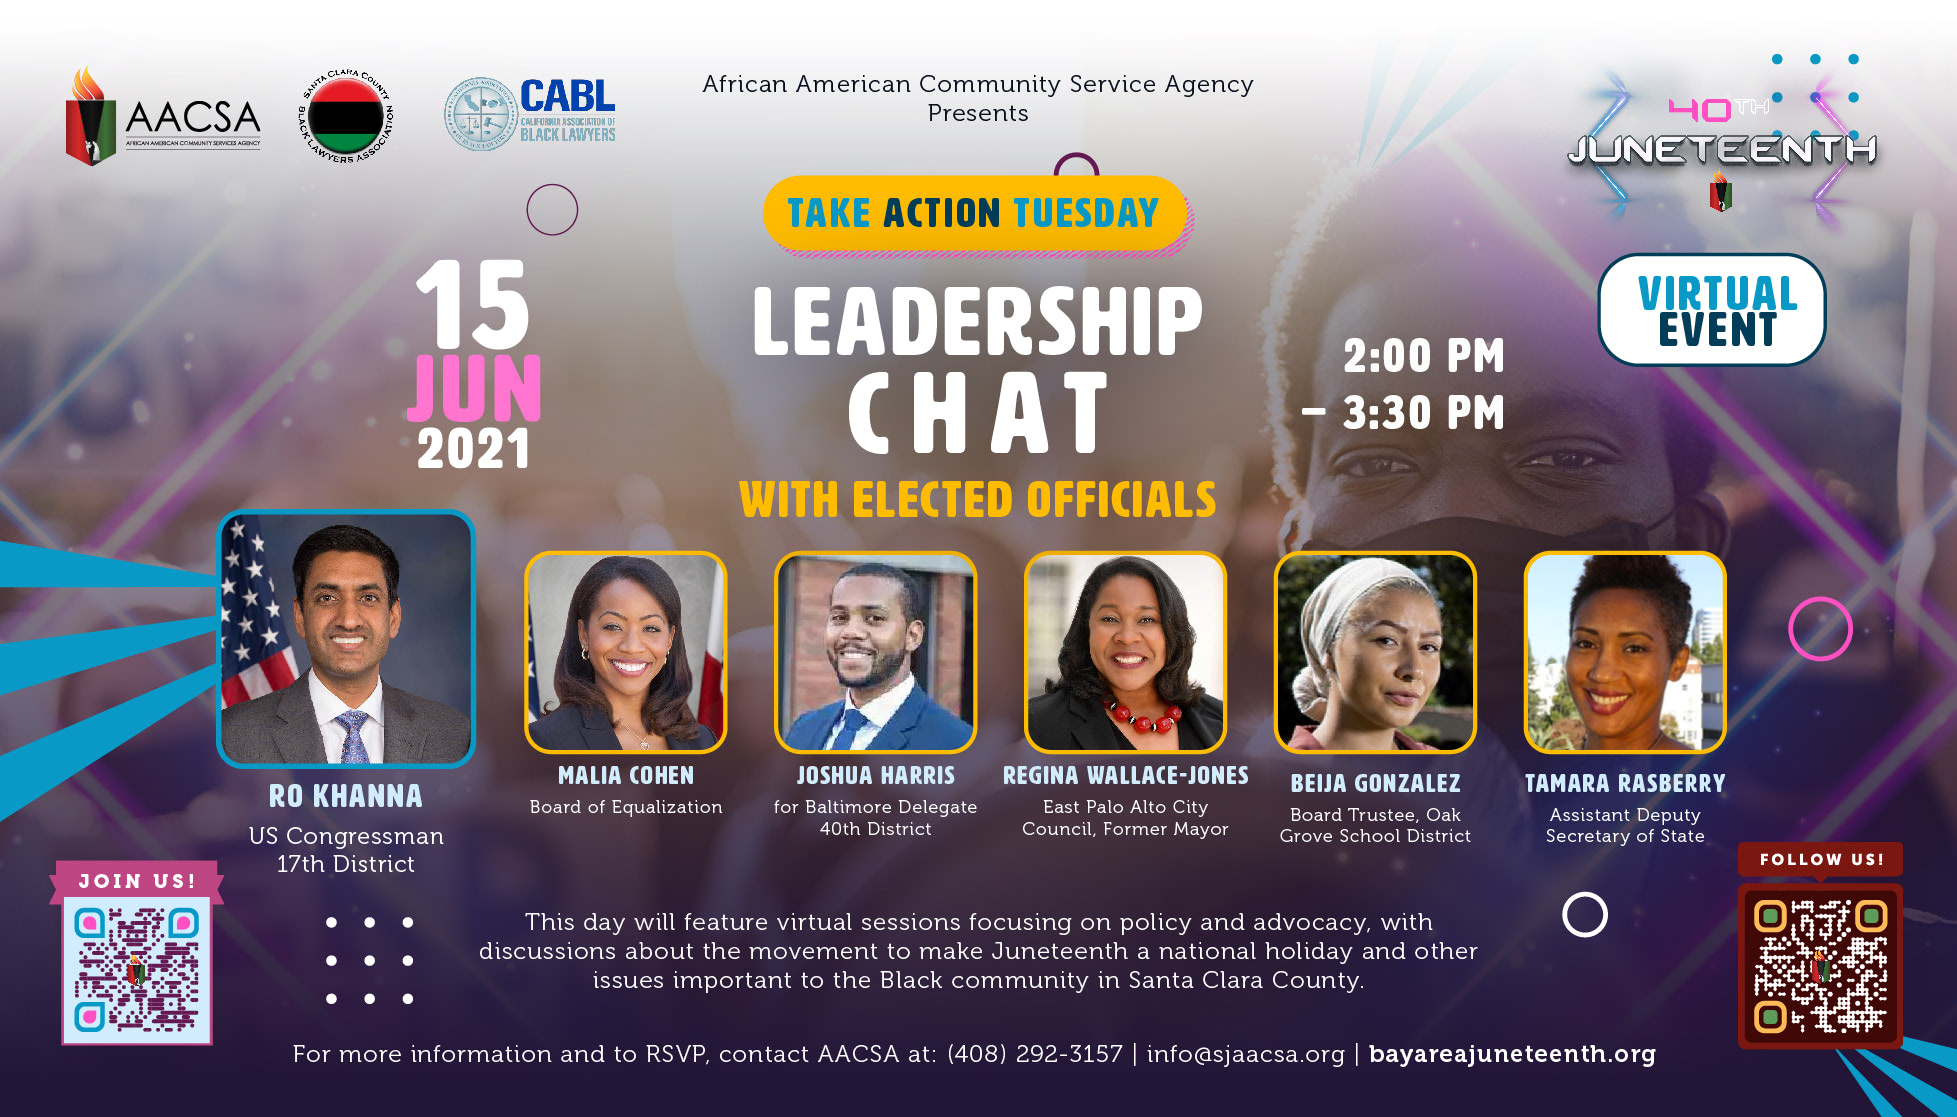 """Banner for the 40th Annual Juneteenth In The Park Celebration Week event: Take Action Tuesday - """"Leadership Chat with Elected Officials"""" from 2:00pm until 3:30pm. Click the banner to see event details & sign-up!"""